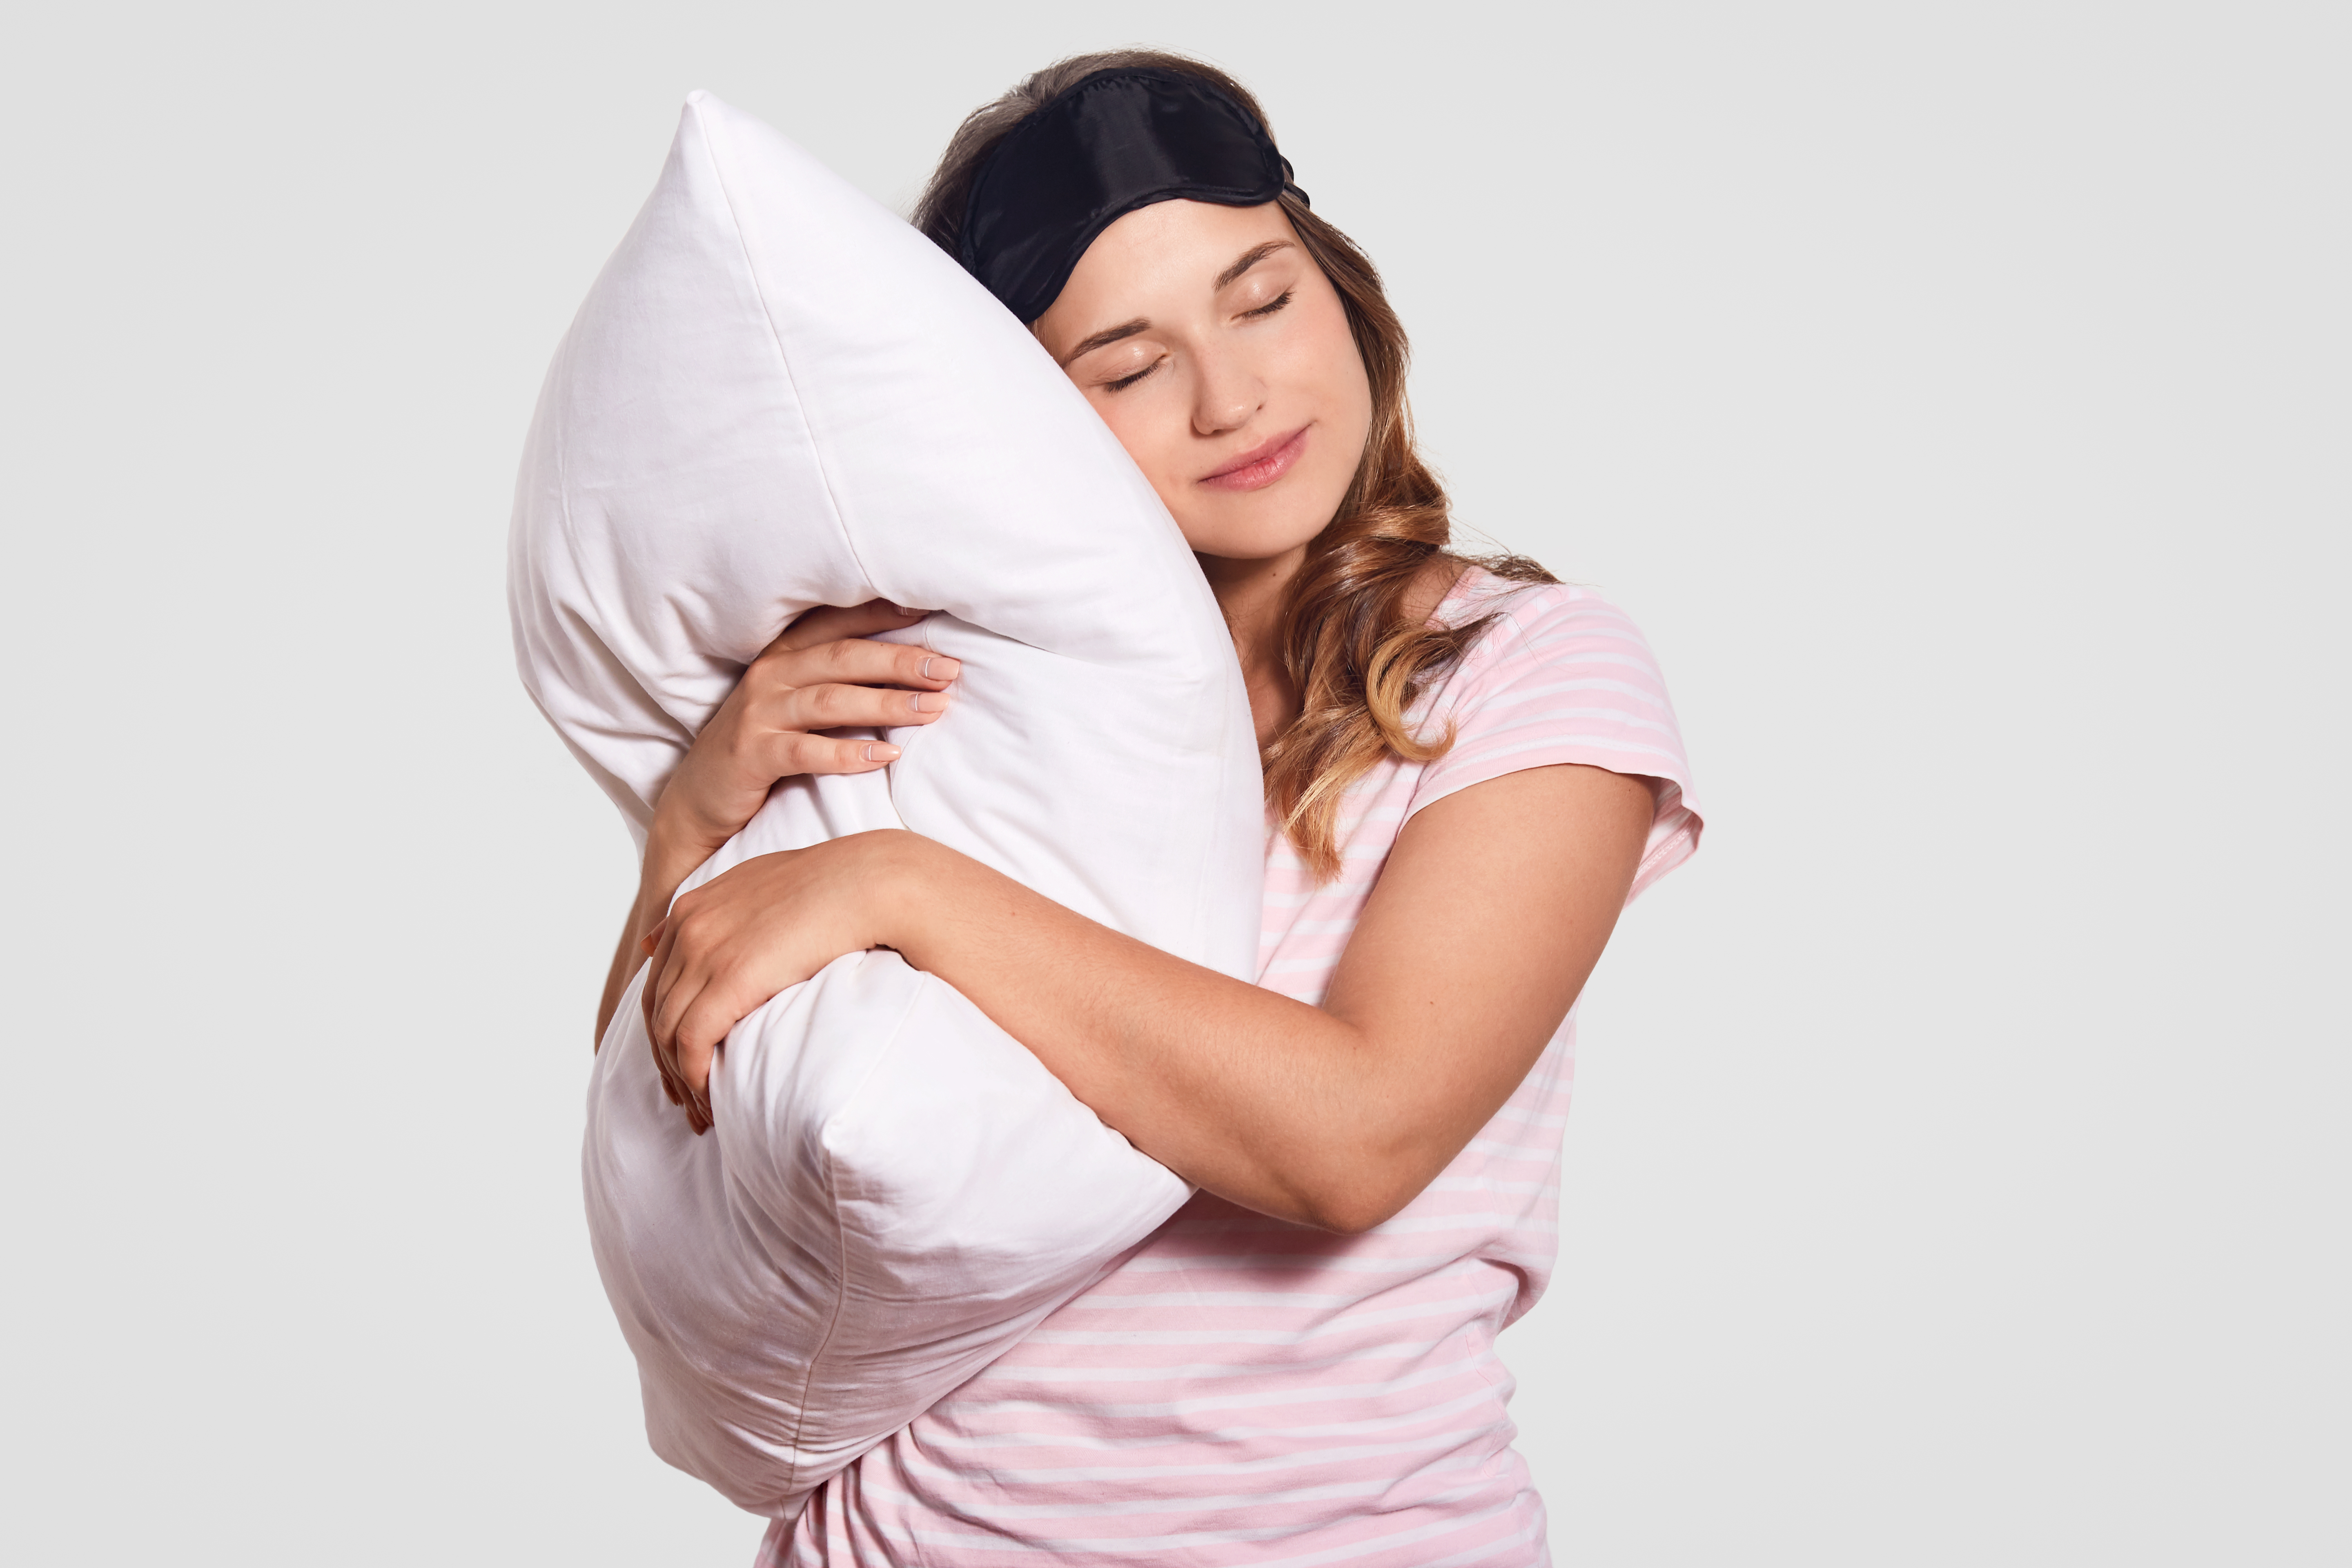 photo-of-european-woman-with-healthy-skin-leans-on-soft-pillow-wears-pyjamas-eyewear-on-head-poses-alone-on-white-has-sleepy-look-people-good-morning-concept